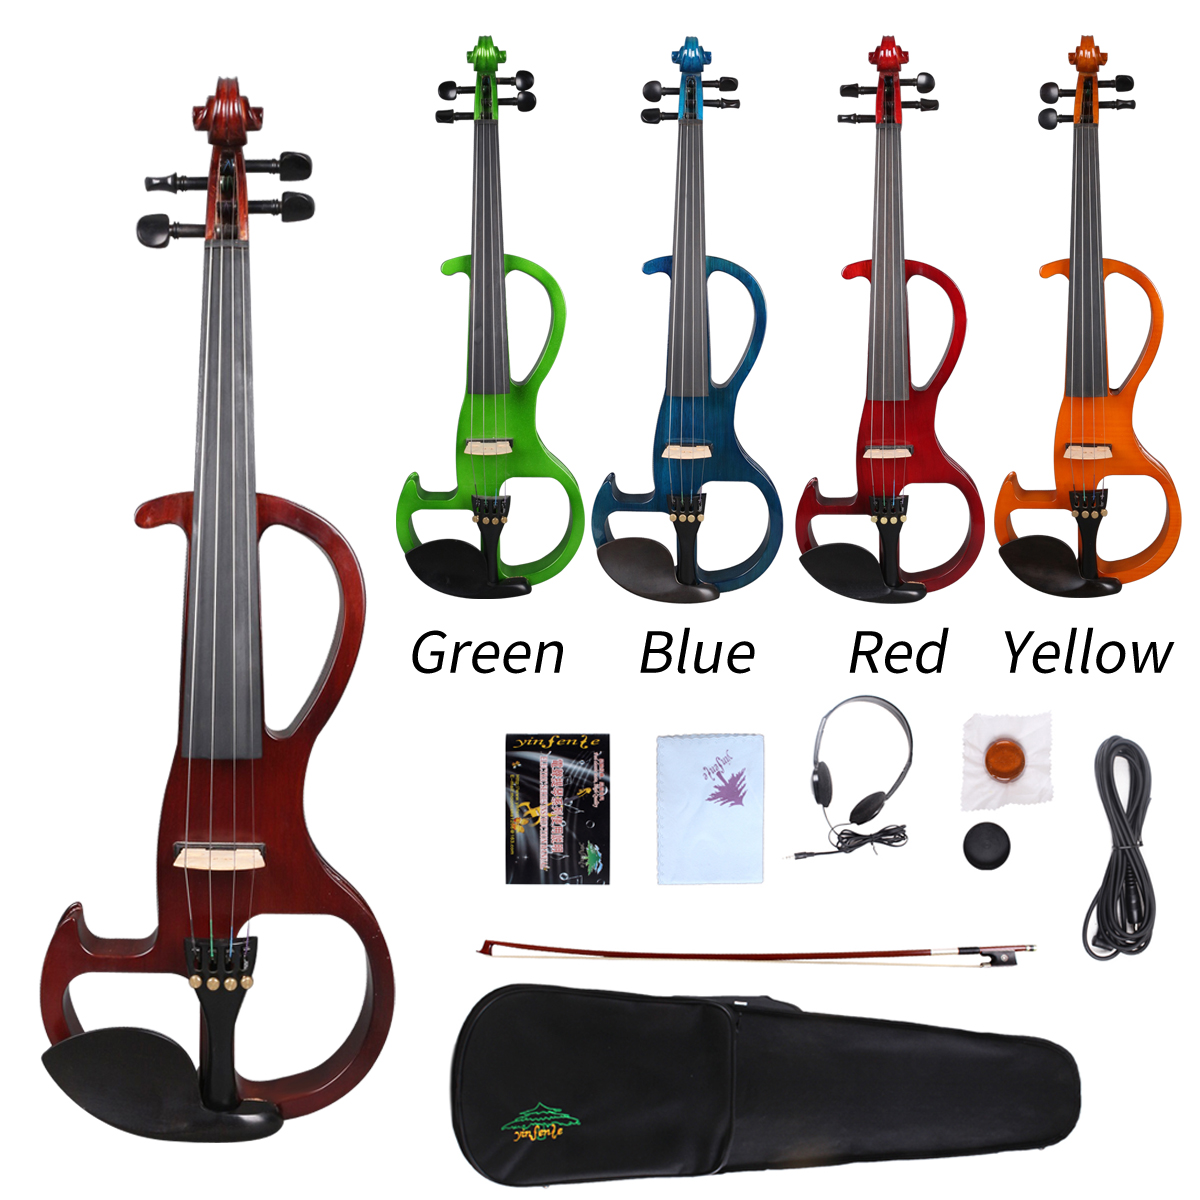 Yinfente Electric Silent Violin 4/4 Wooden Body Sweet Sound Free Case BowYinfente Electric Silent Violin 4/4 Wooden Body Sweet Sound Free Case Bow